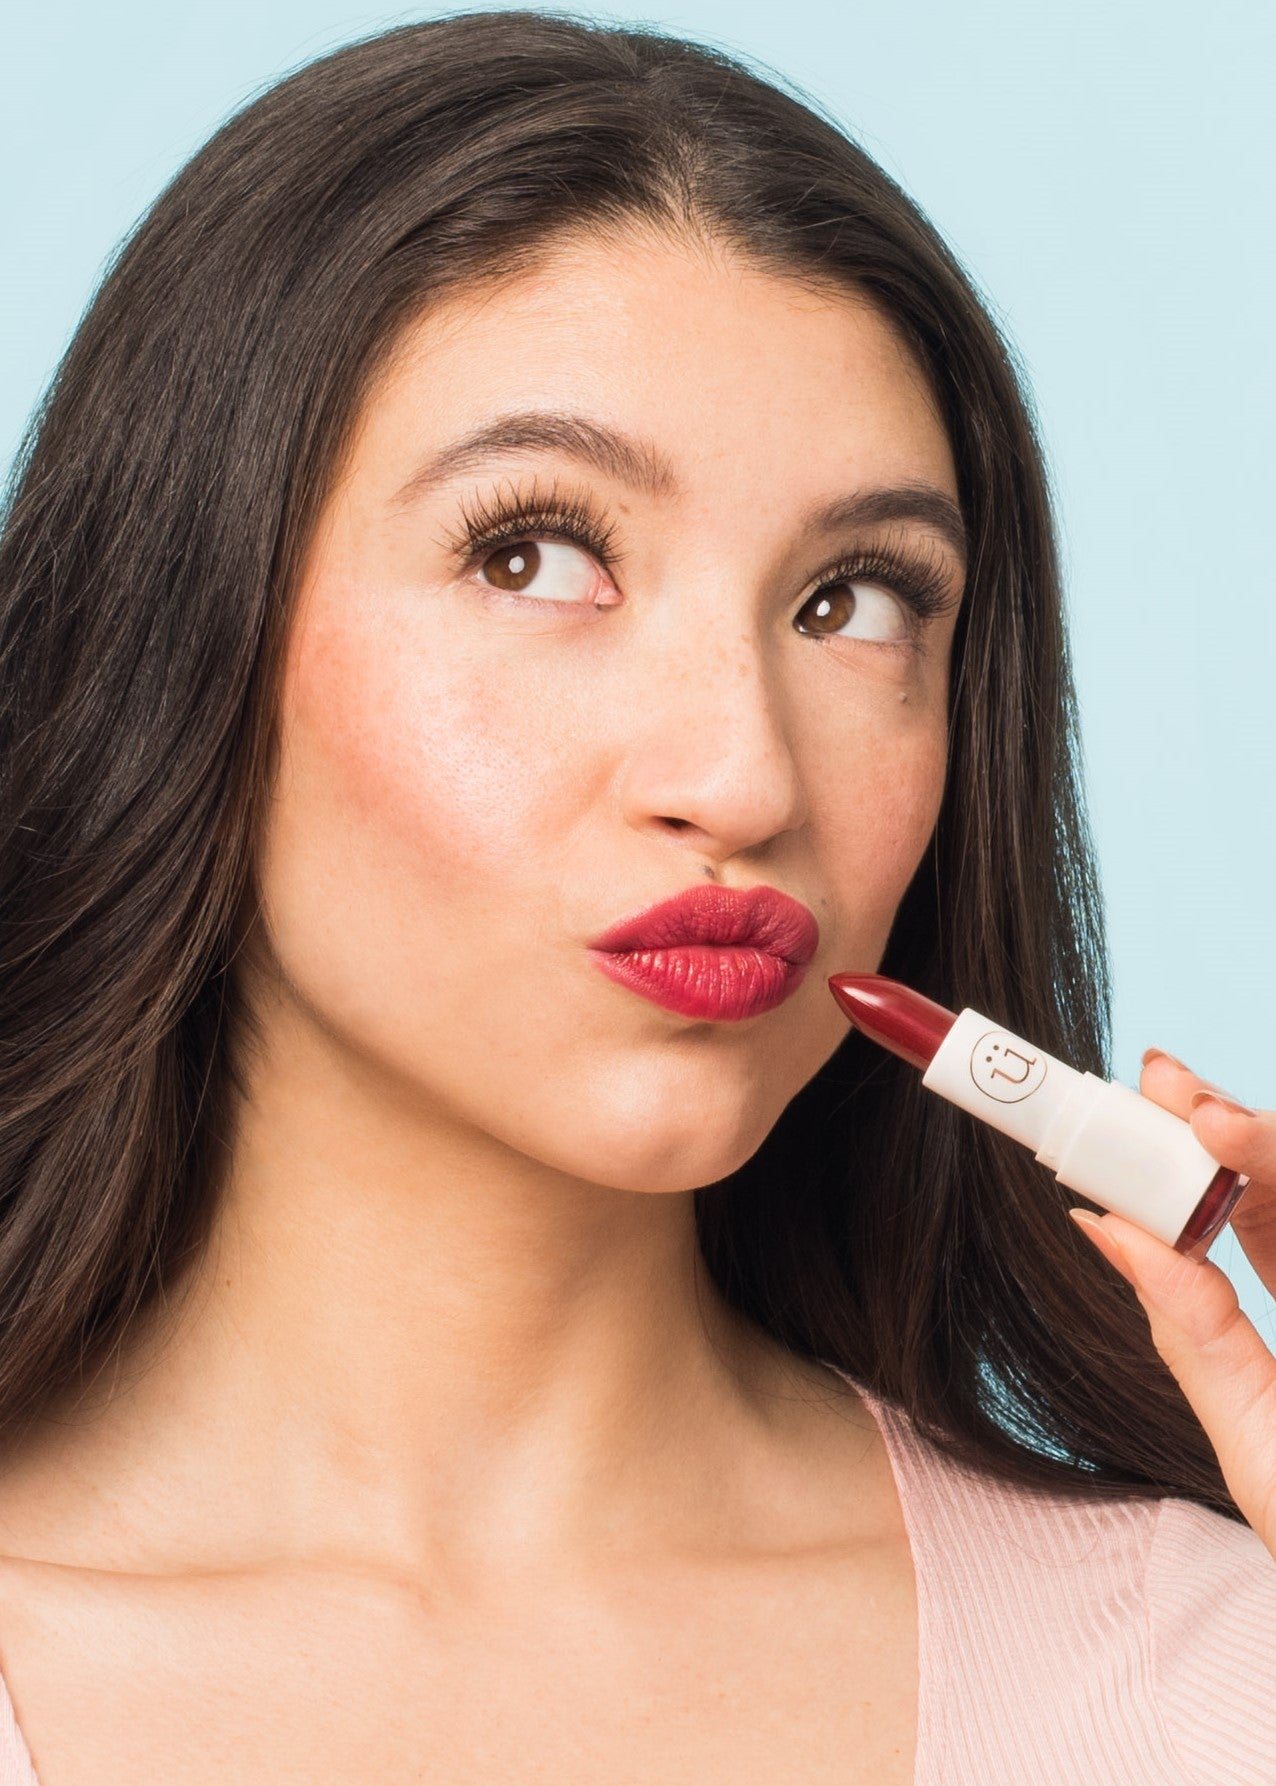 girl looking up pouting her lips holding red moisturizing lipstick toward the lips